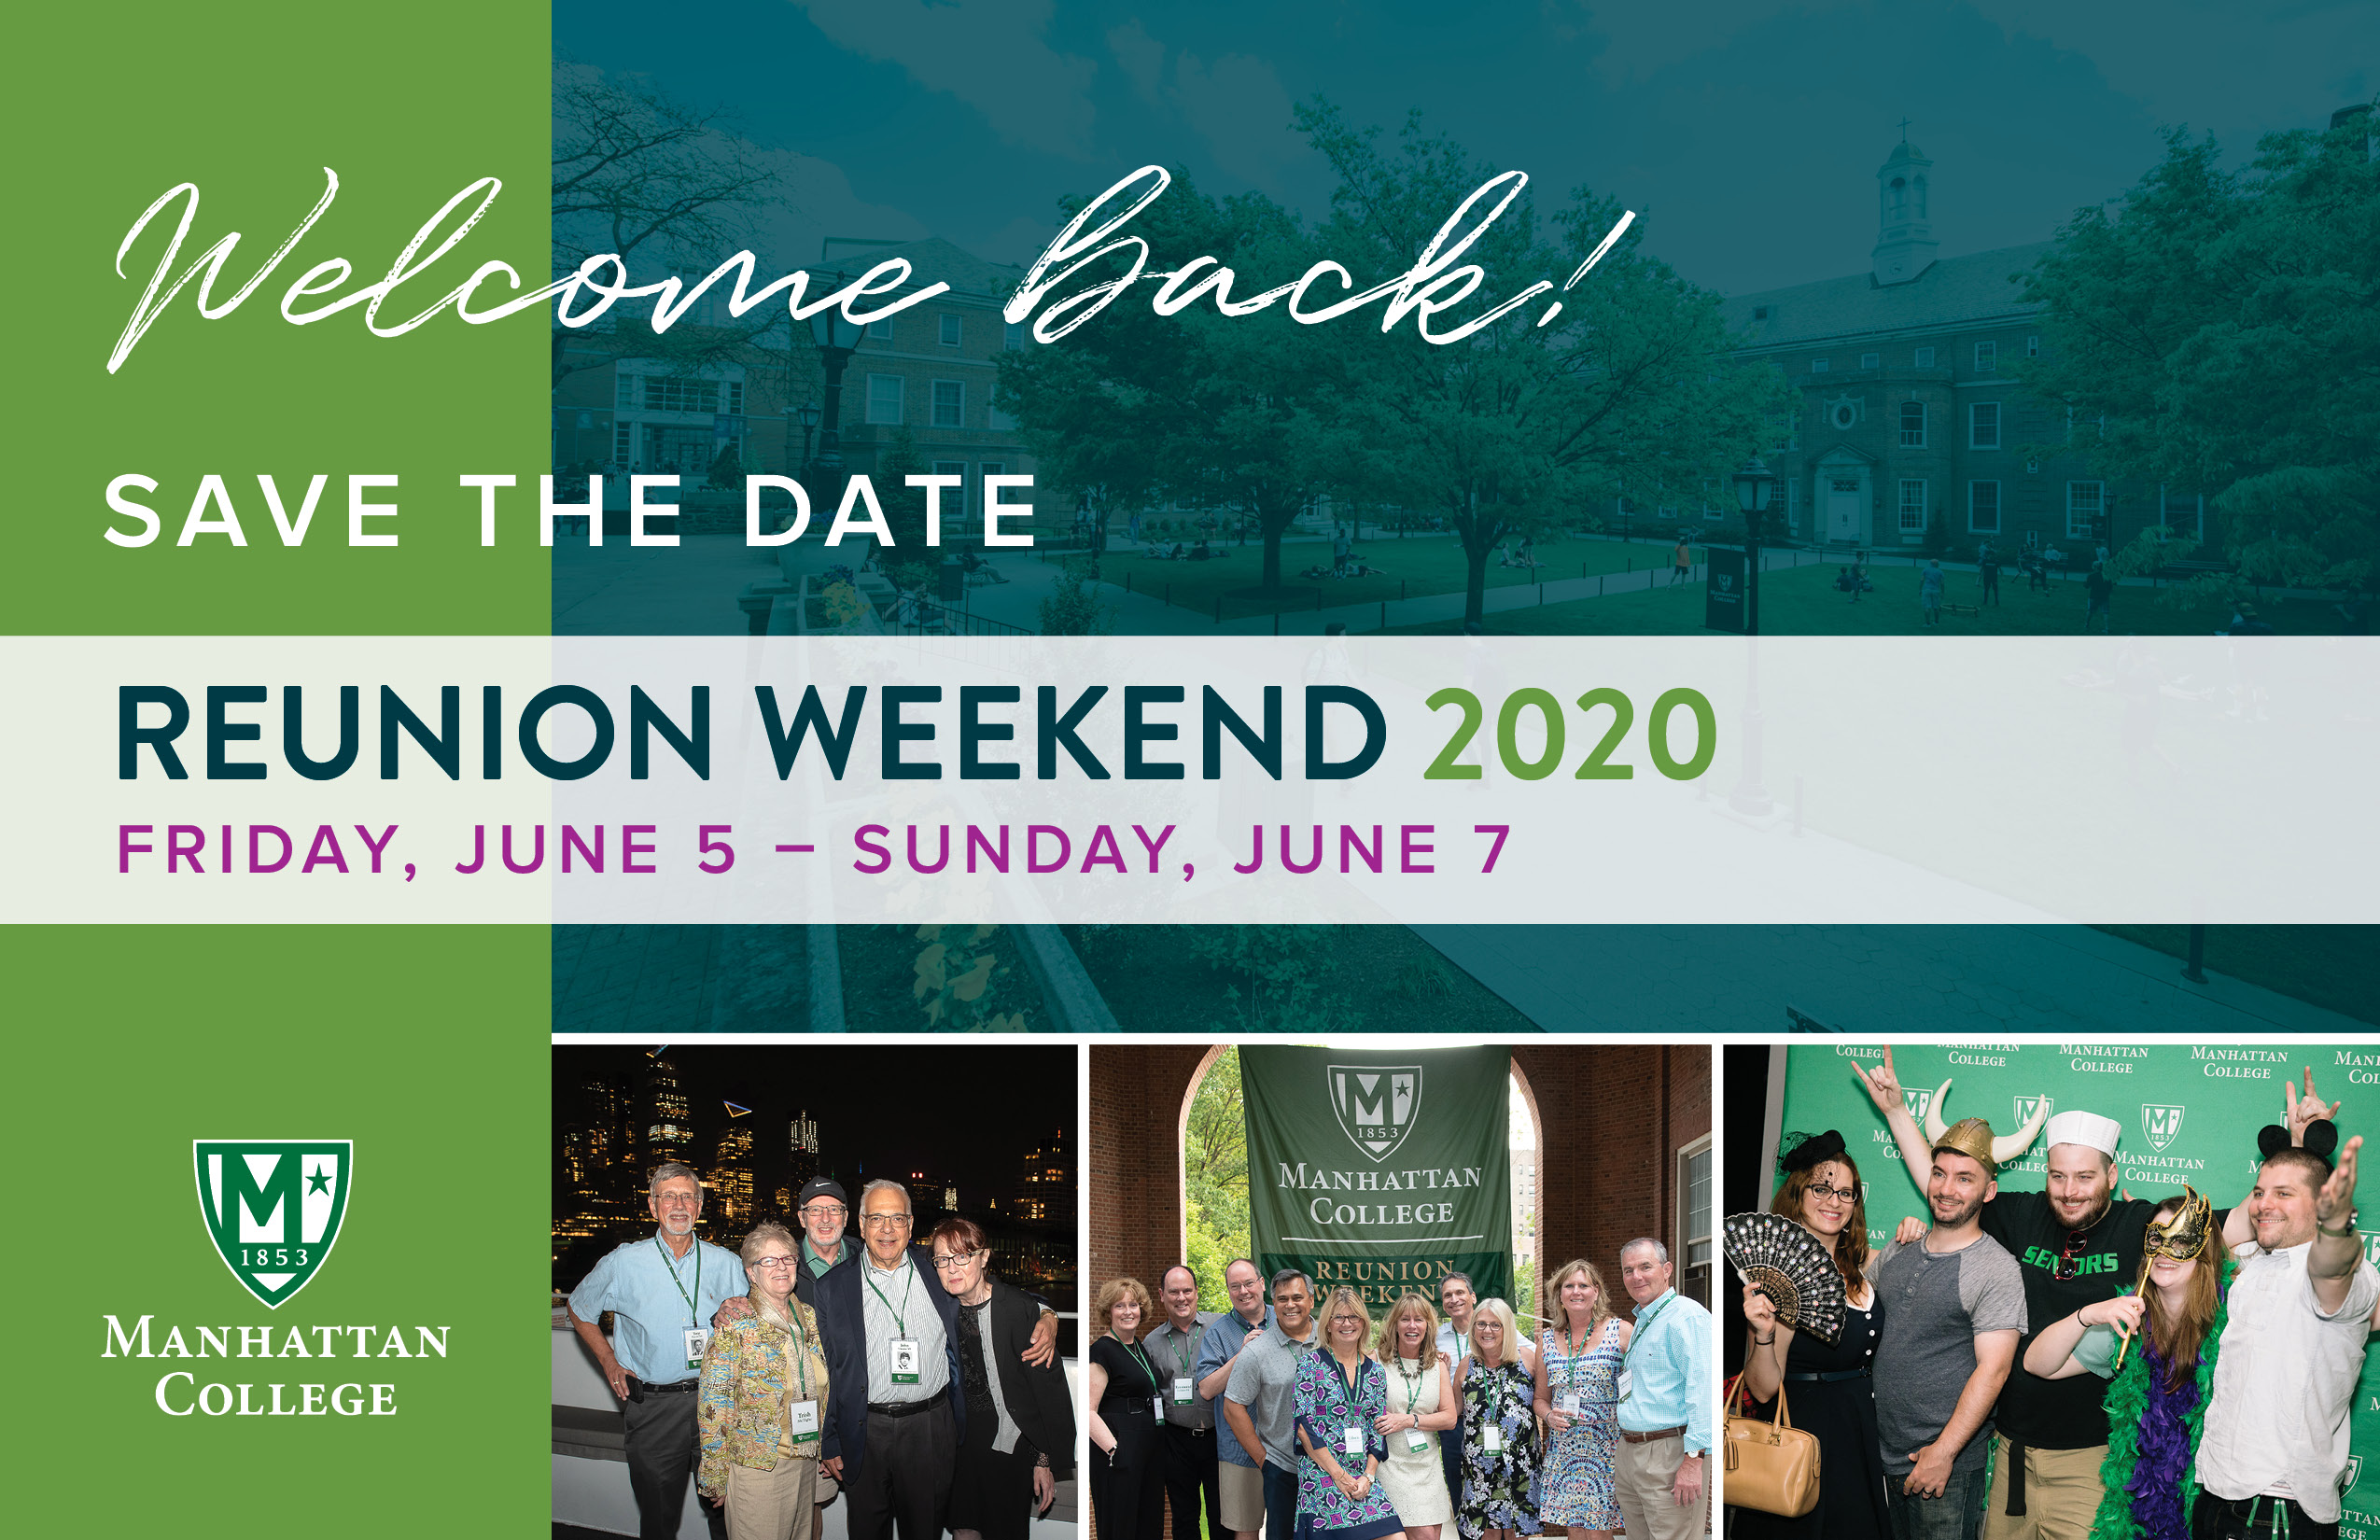 Welcome Back! Save the Date for Reunion Weekend 2020! Friday, June 5 - Sunday, June 7